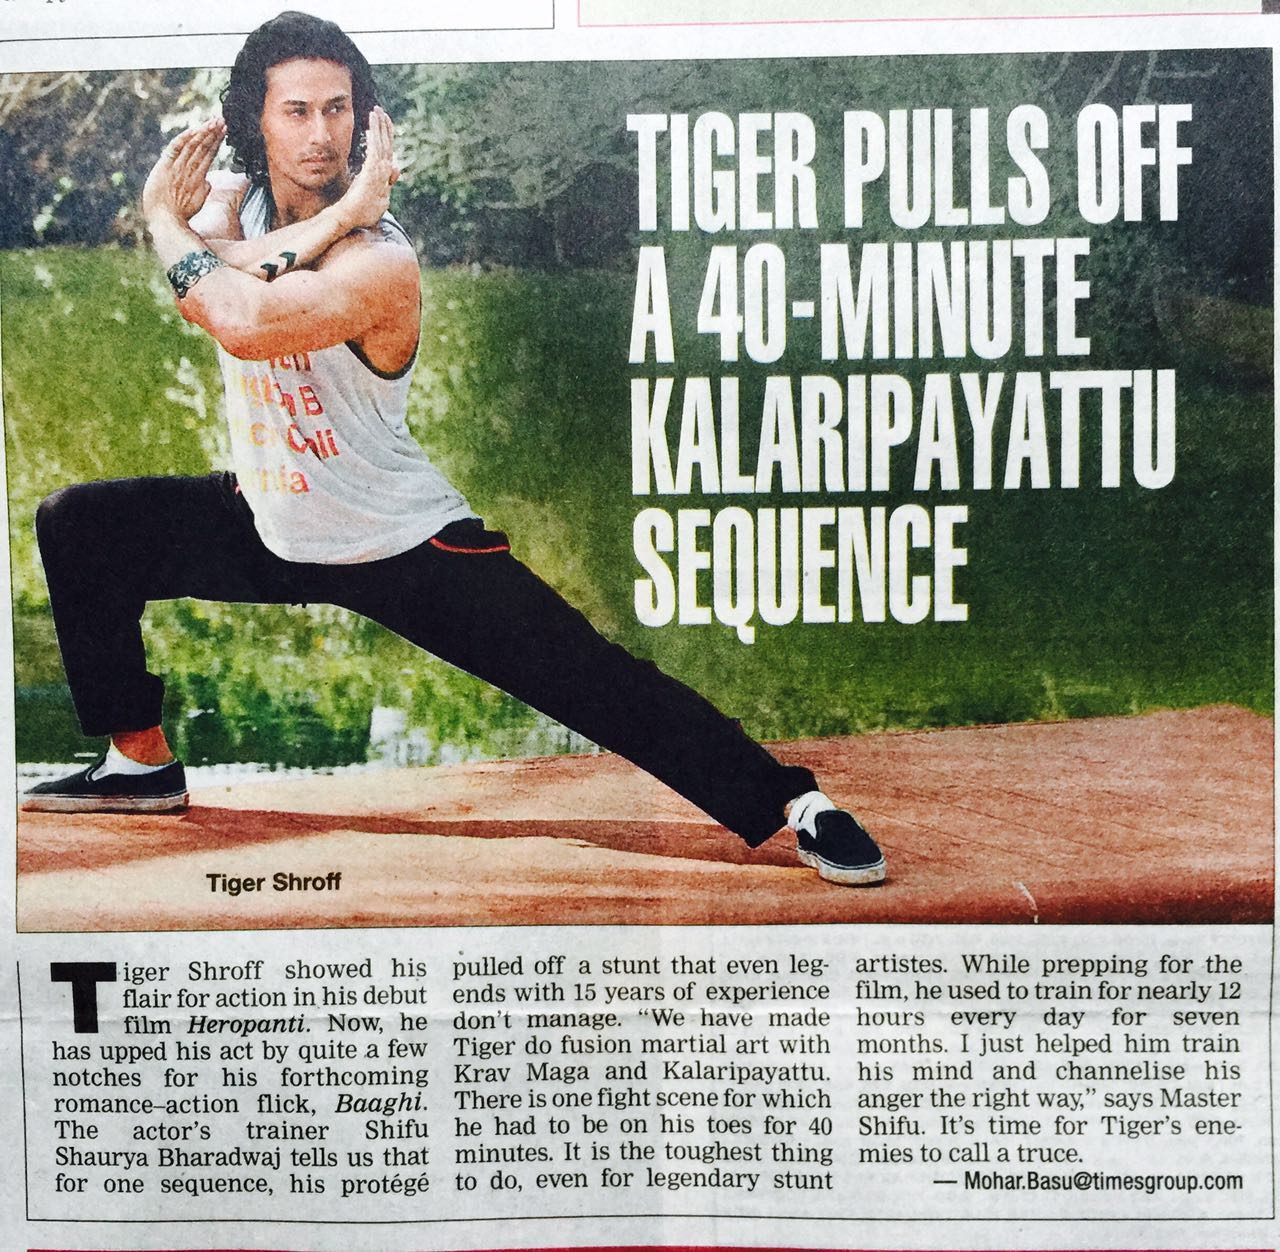 Tiger pulls off a 40 minute kalaripayattu sequence